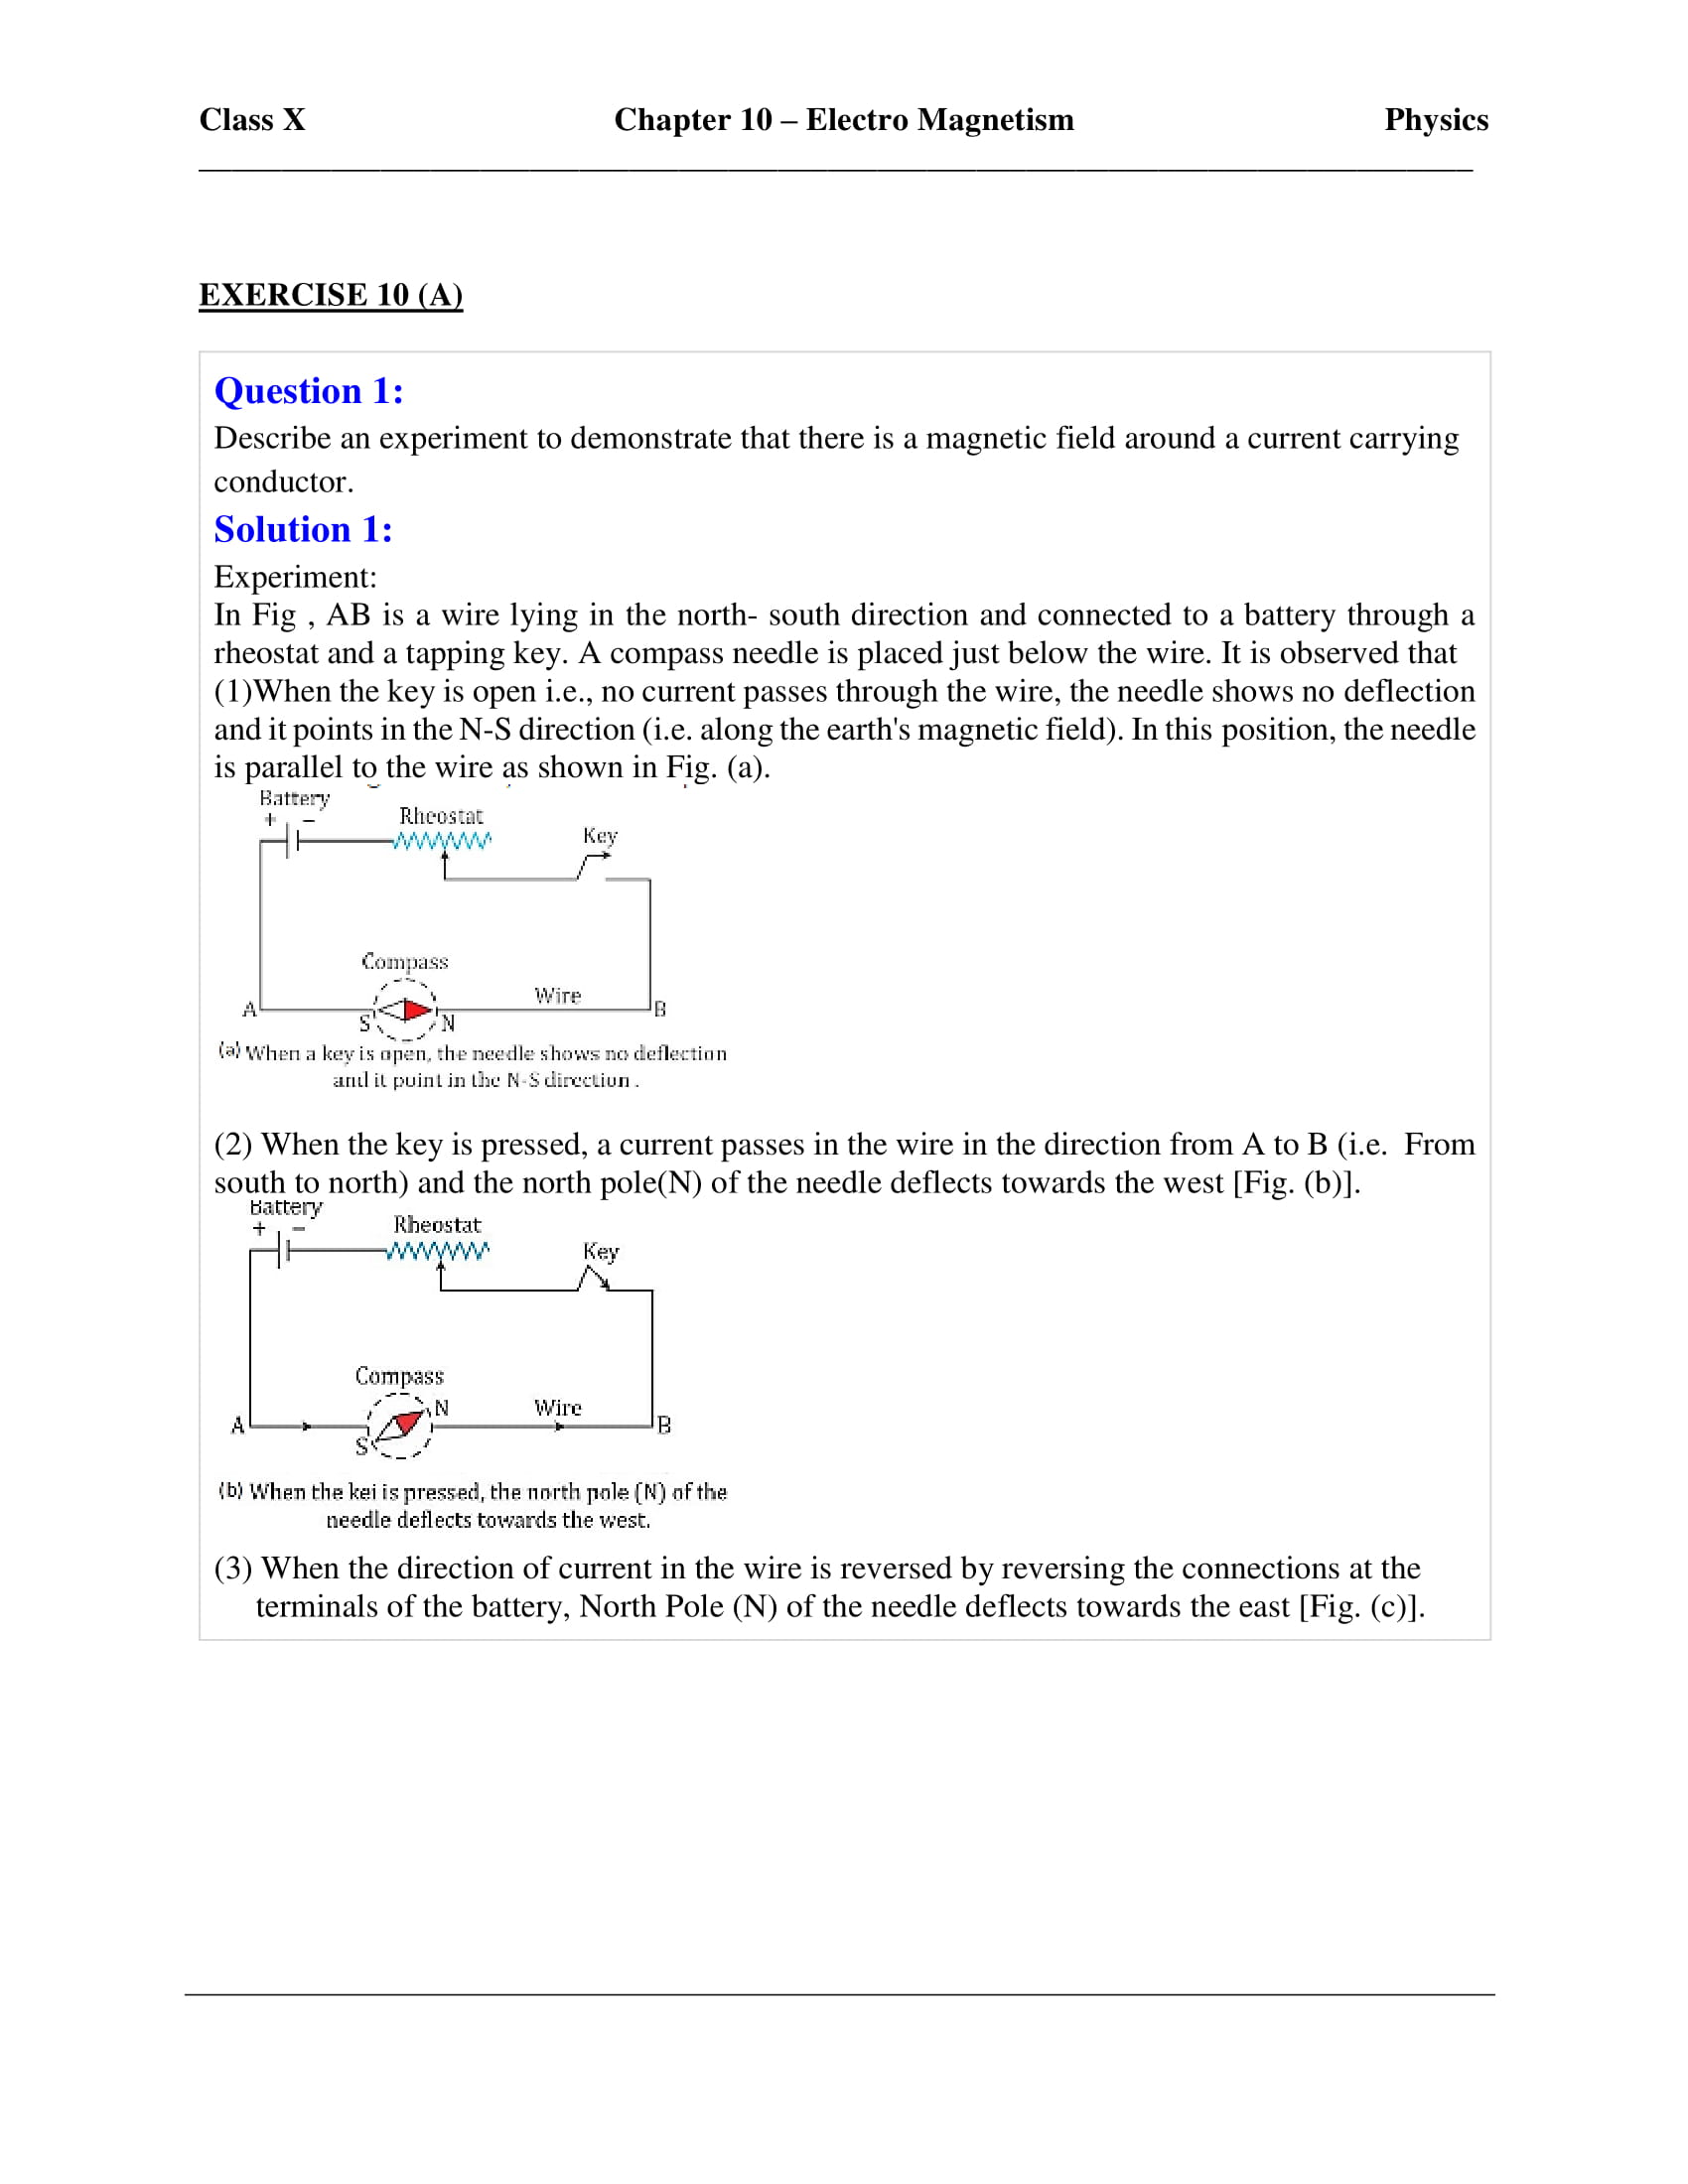 ICSE Solutions Class 10 Physics Chapter 10 Electromagnetism - Free